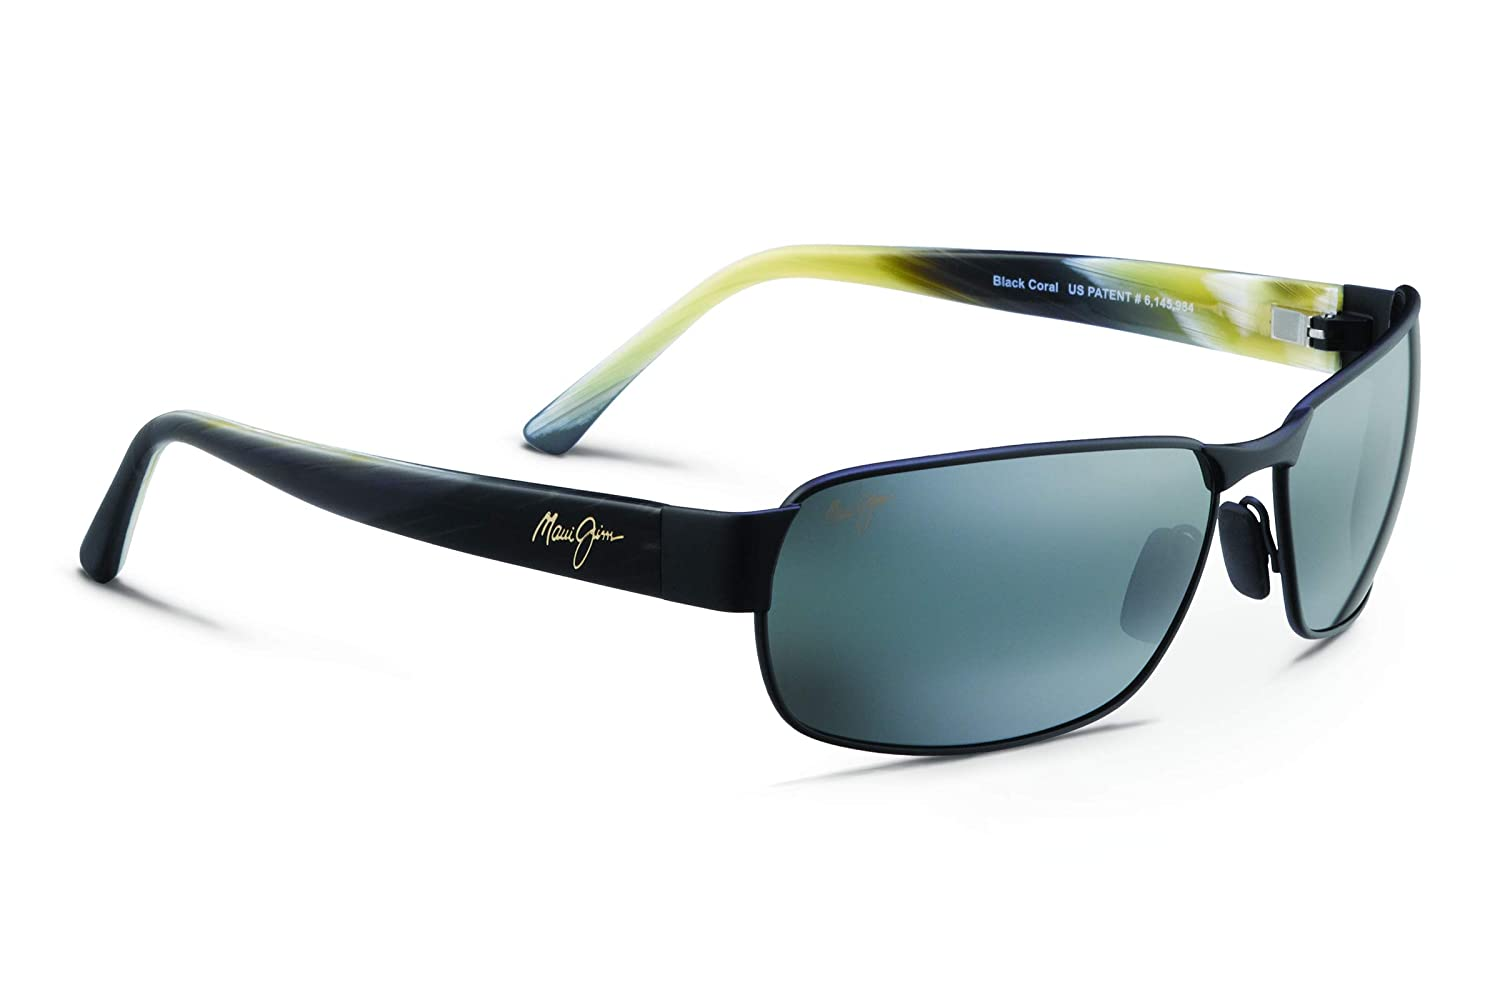 01135bab8 Maui Jim 249-2M Matte Black Black Coral Rectangle Sunglasses Polarised  Golf, Dr: Amazon.co.uk: Clothing